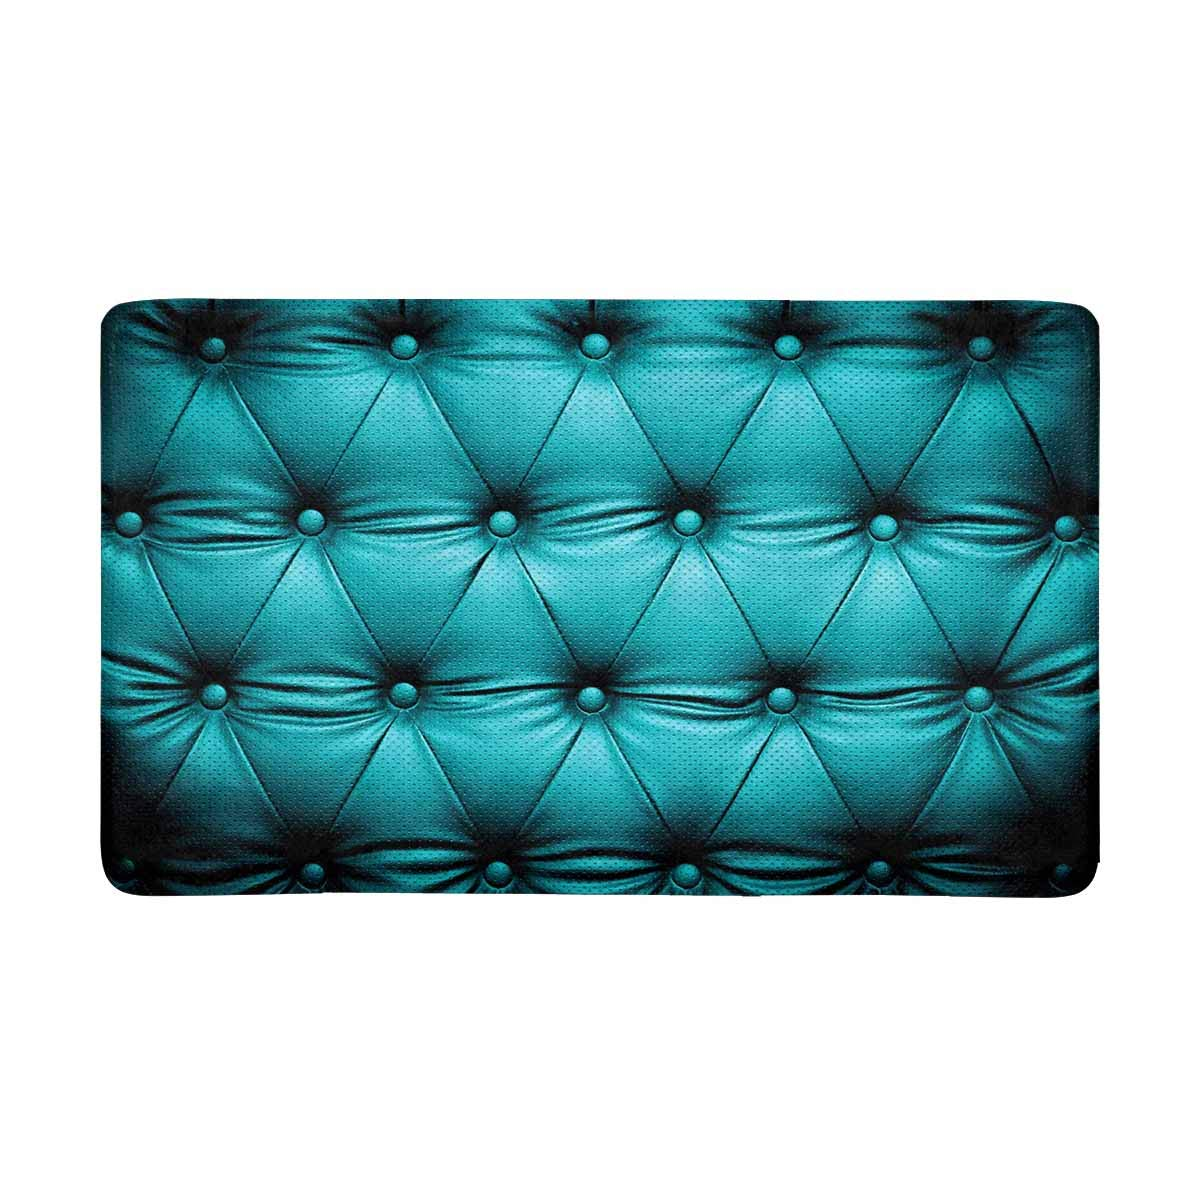 Rug With Turquoise Sofa: MKHERT Funny Blue Turquoise Buttoned Couch Sofa Bed